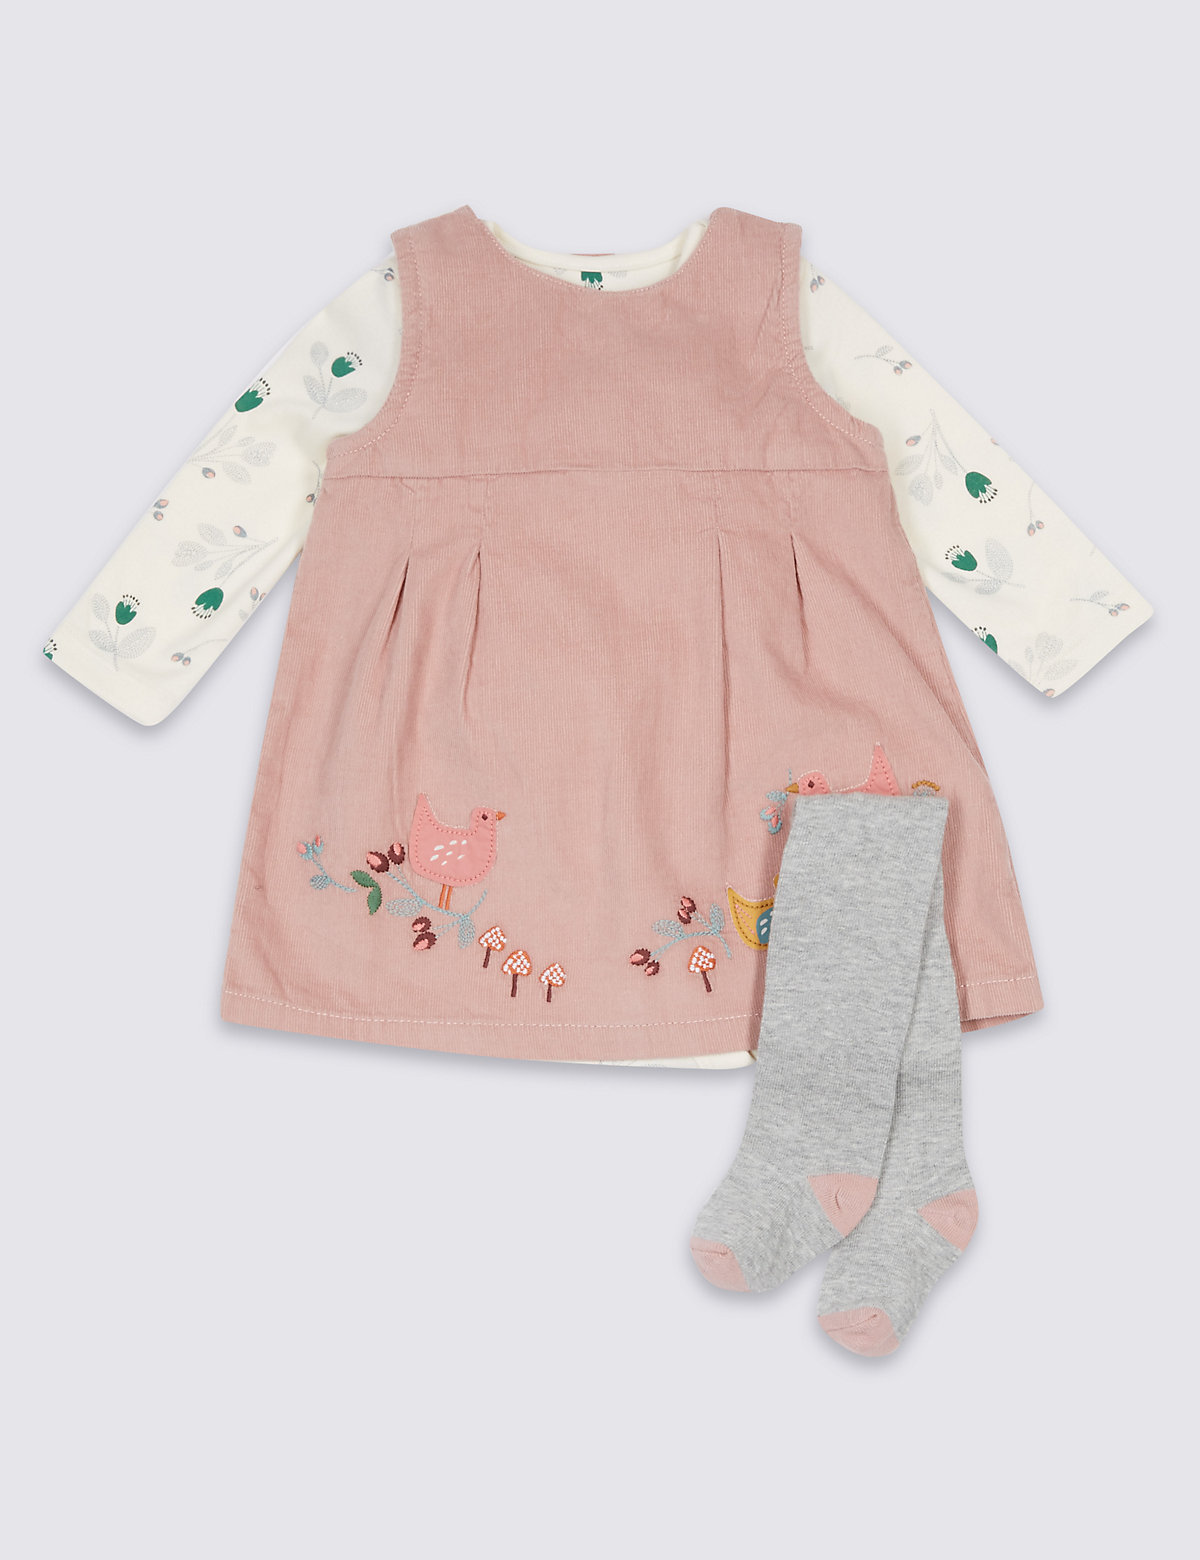 3 Piece Dress & Bodysuit with Tights Outfit